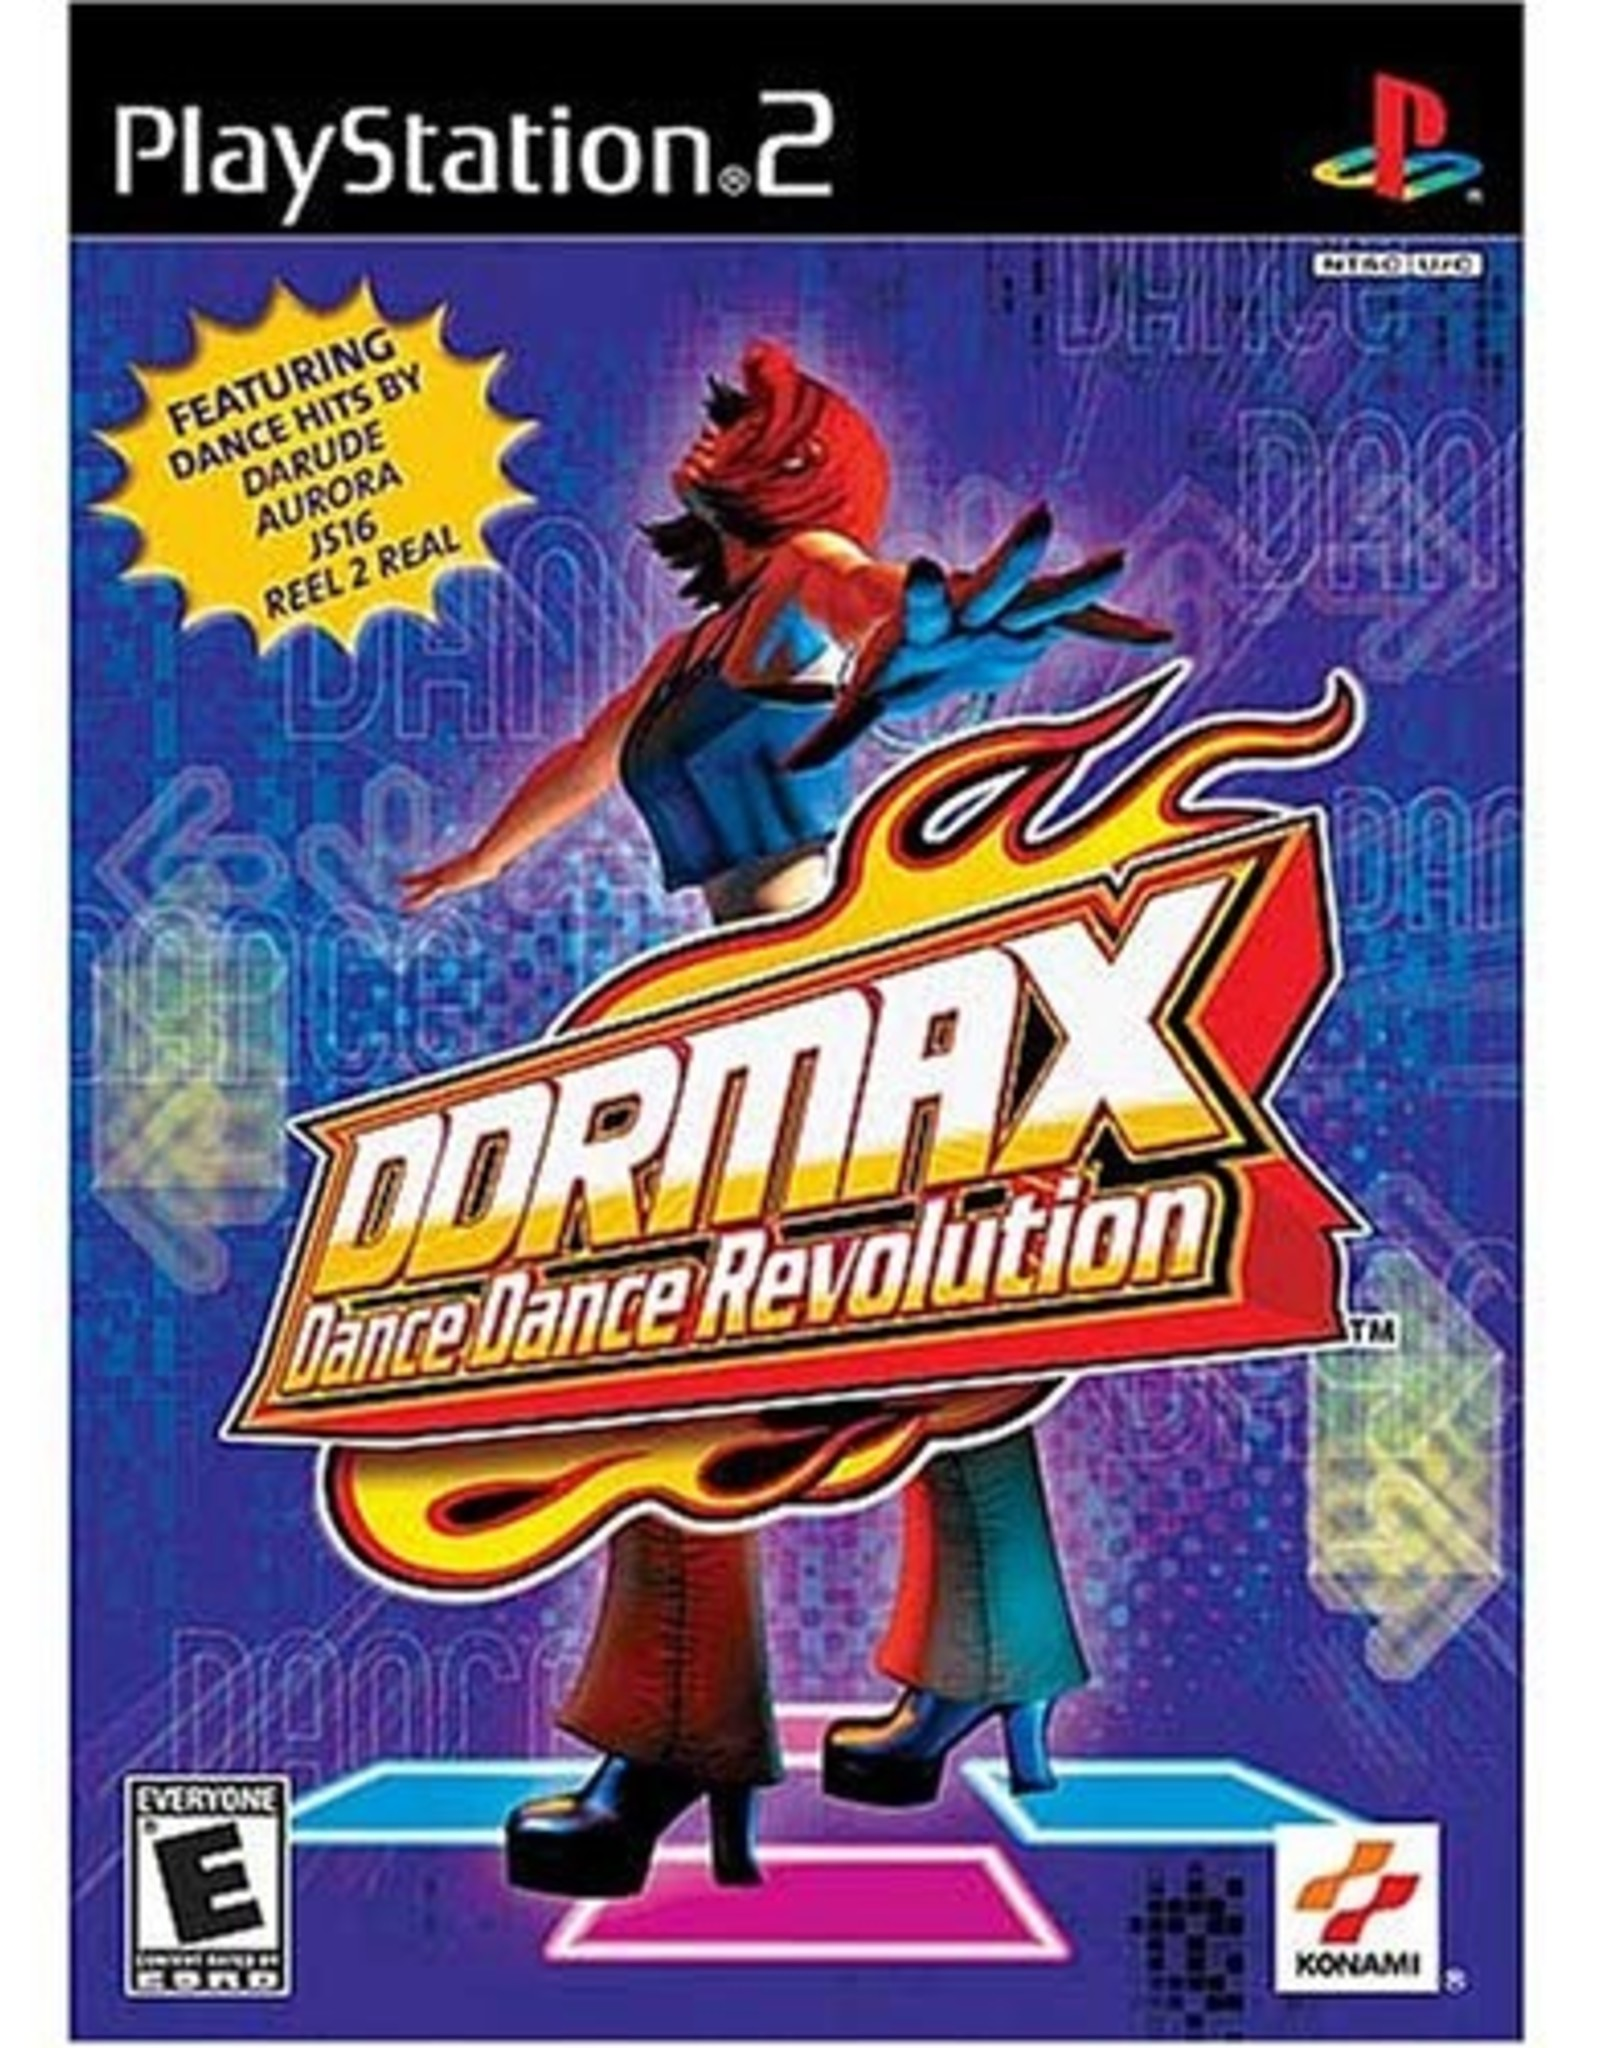 DDR MAX Dance Dance Revolution - PS2 PrePlayed